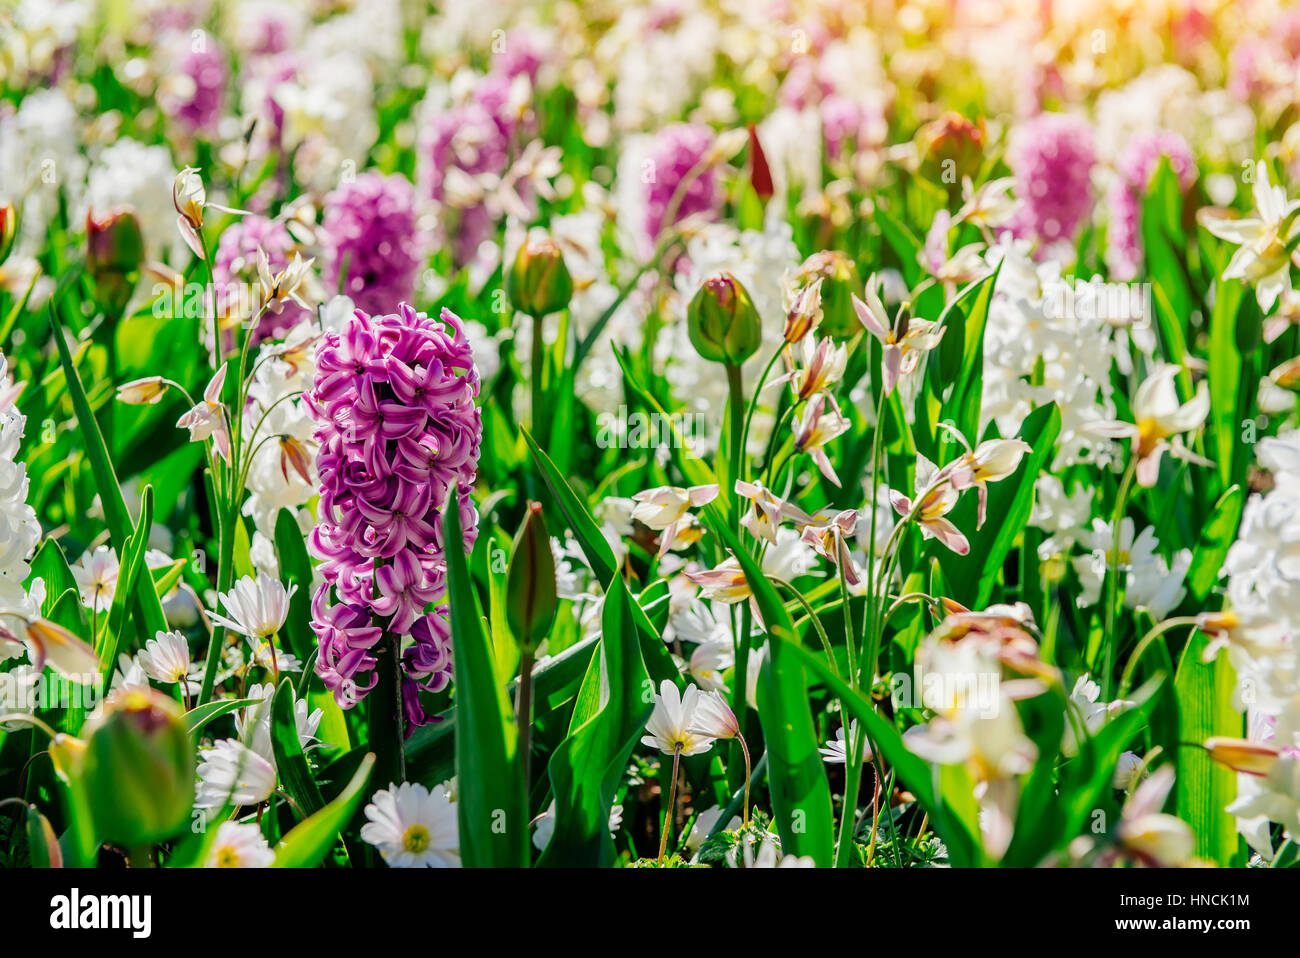 Flower flowerbeds in the park - Stock Image